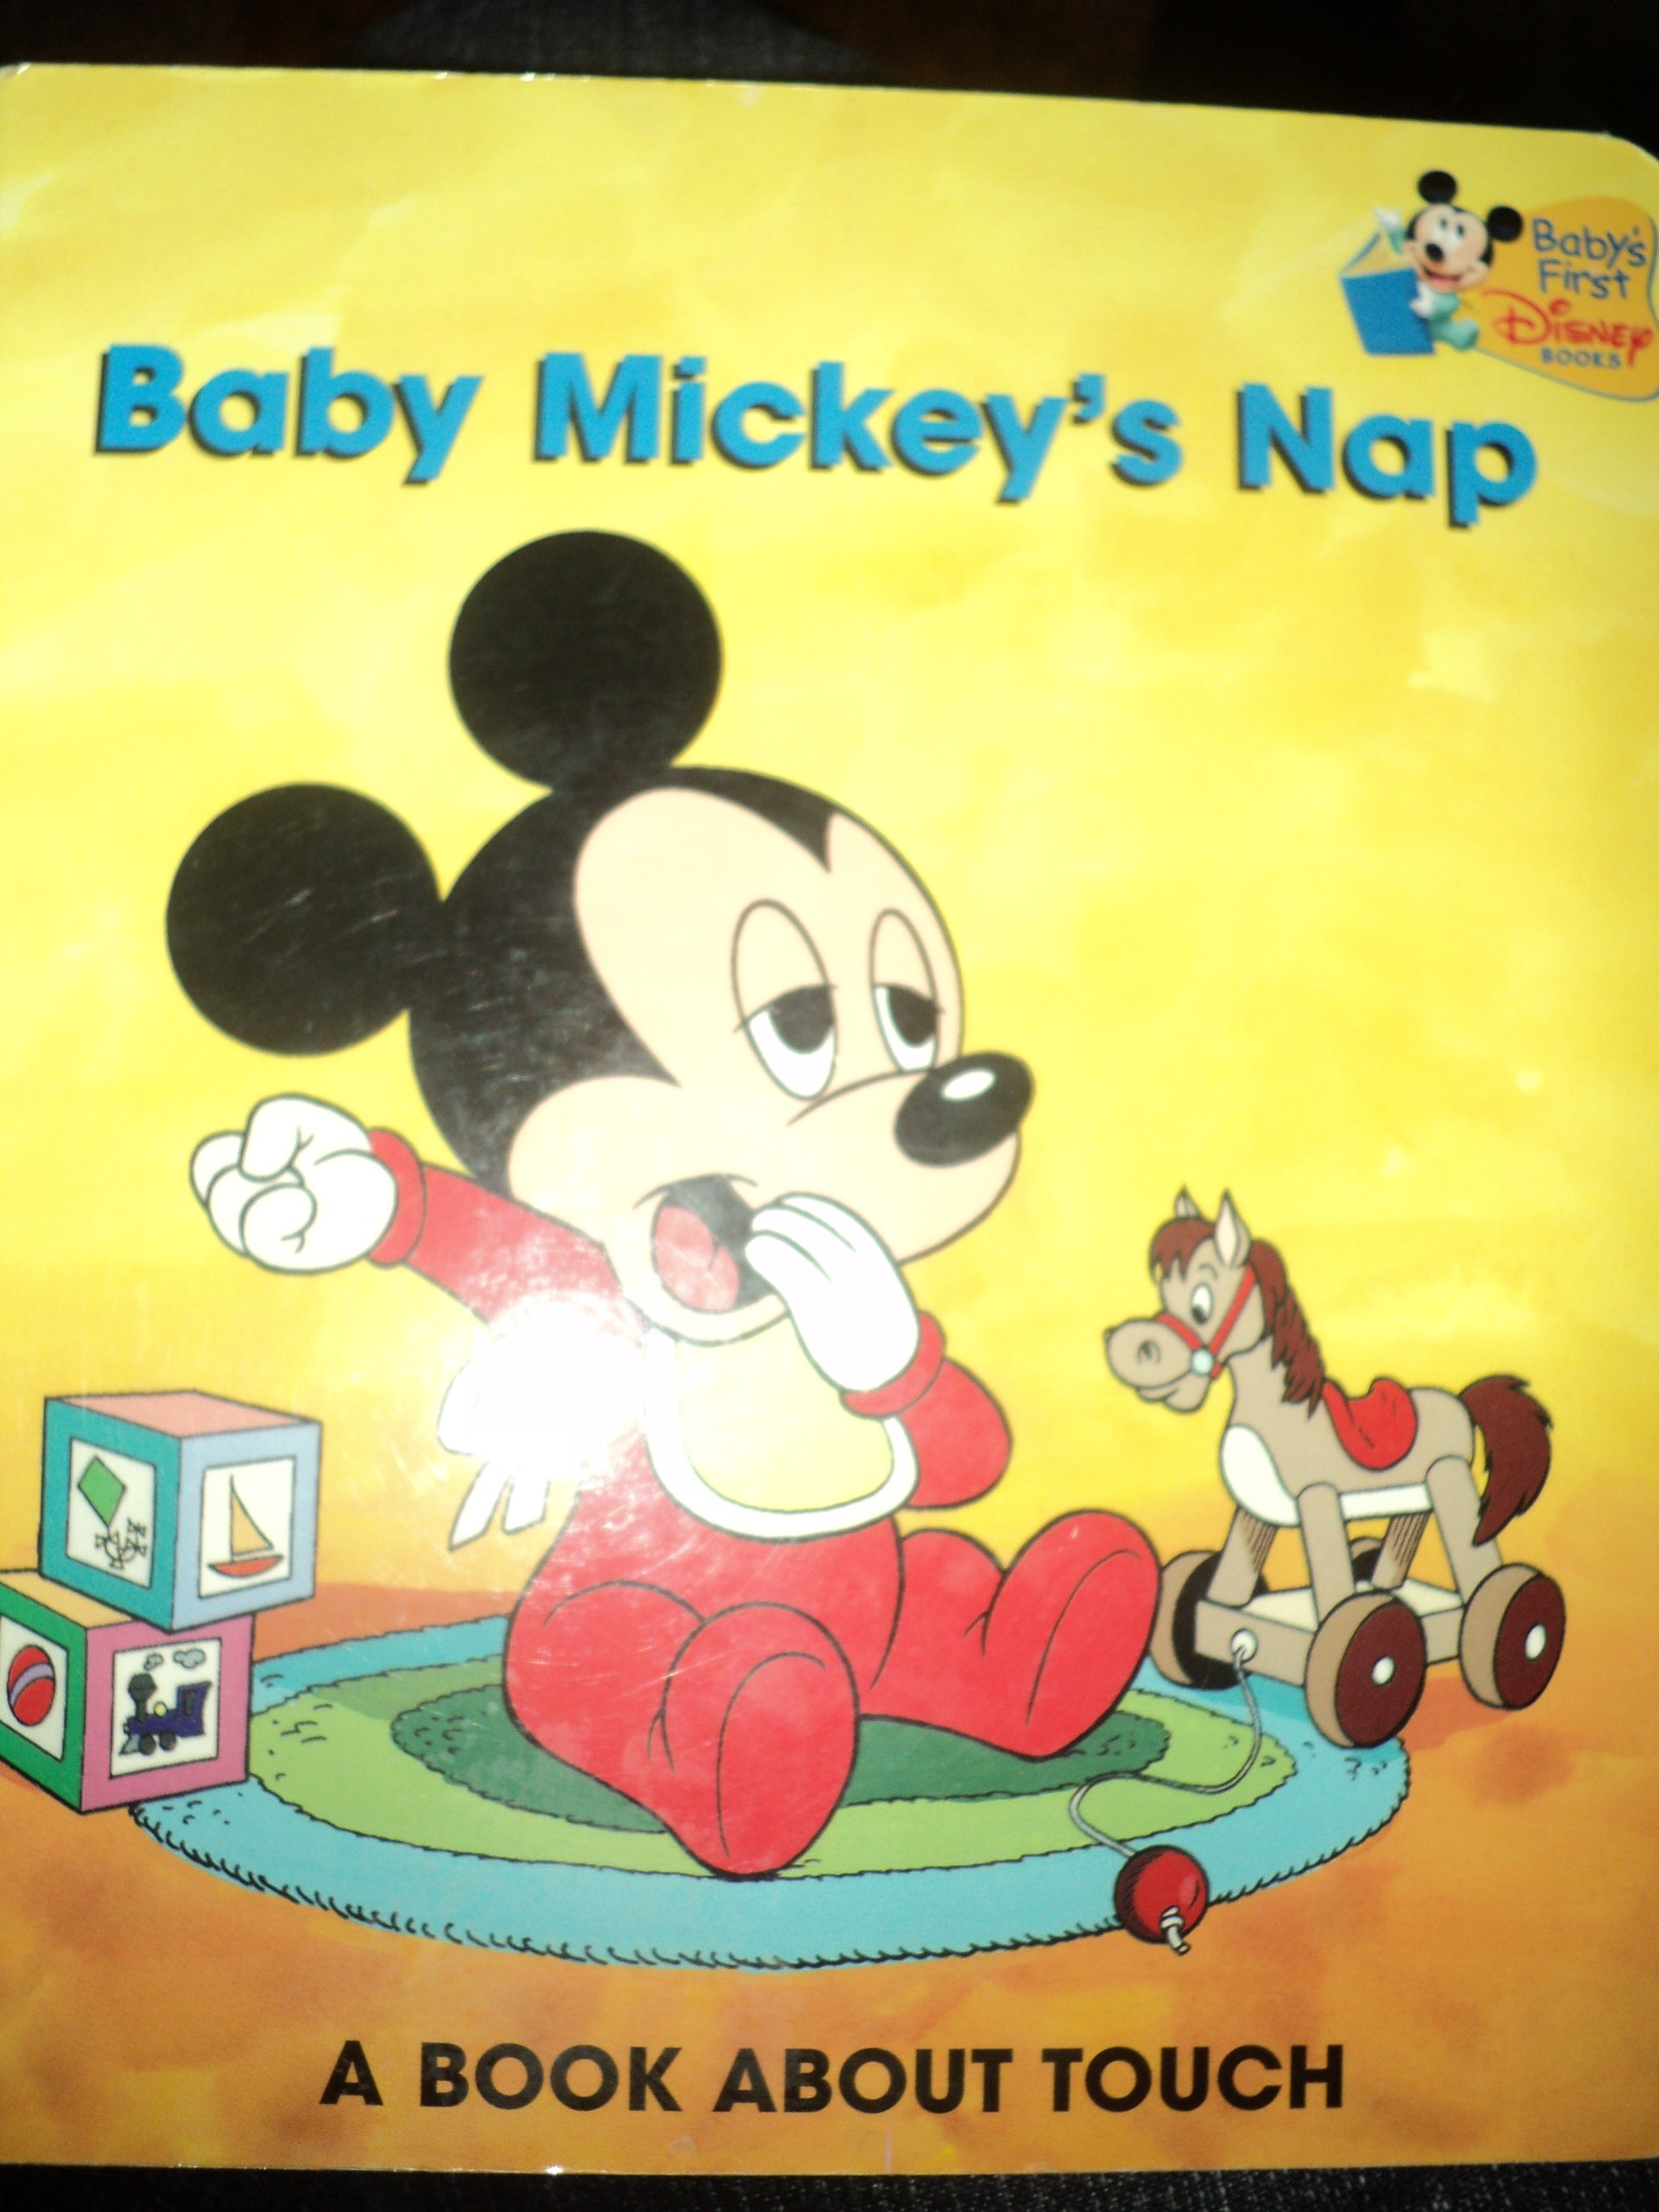 Baby Mickeys Nap about Disney product image